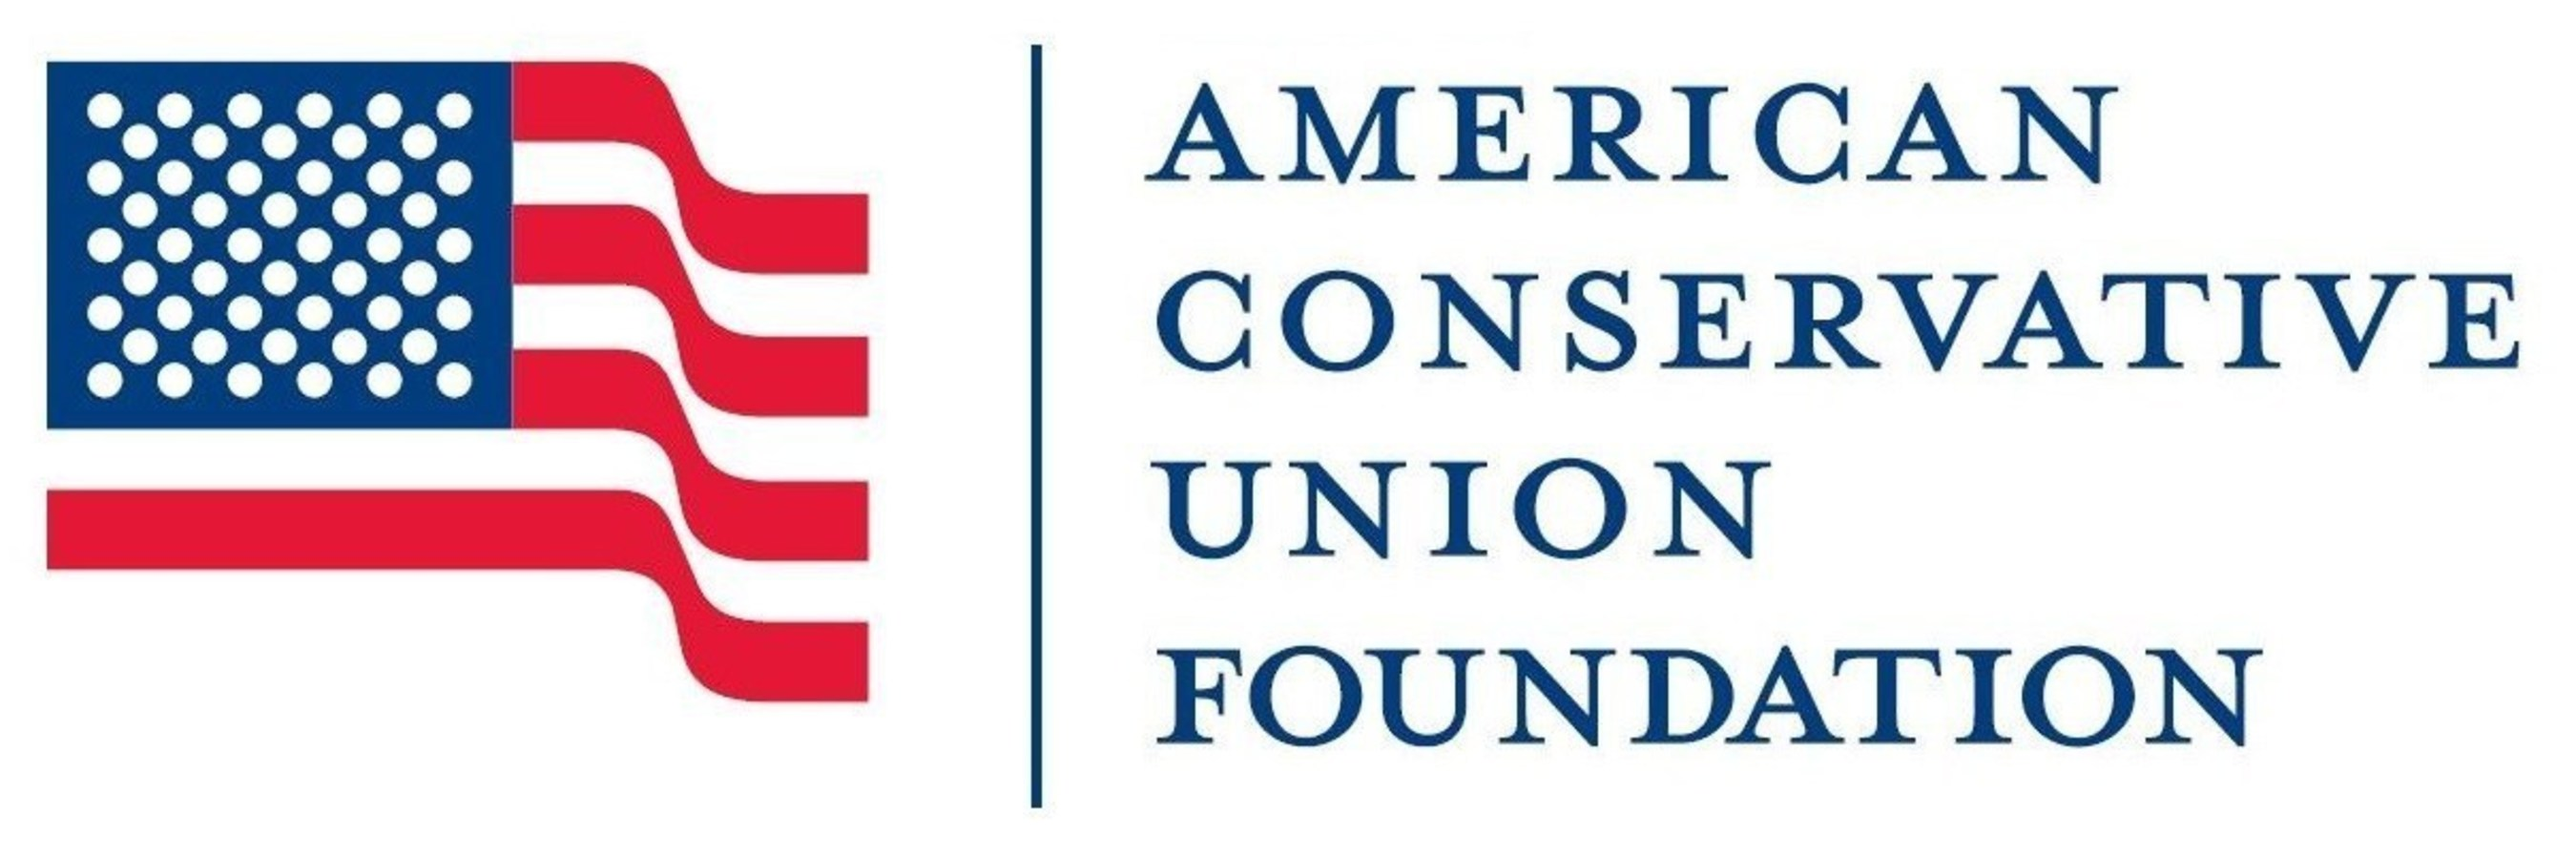 American Conservative Union Foundation logo